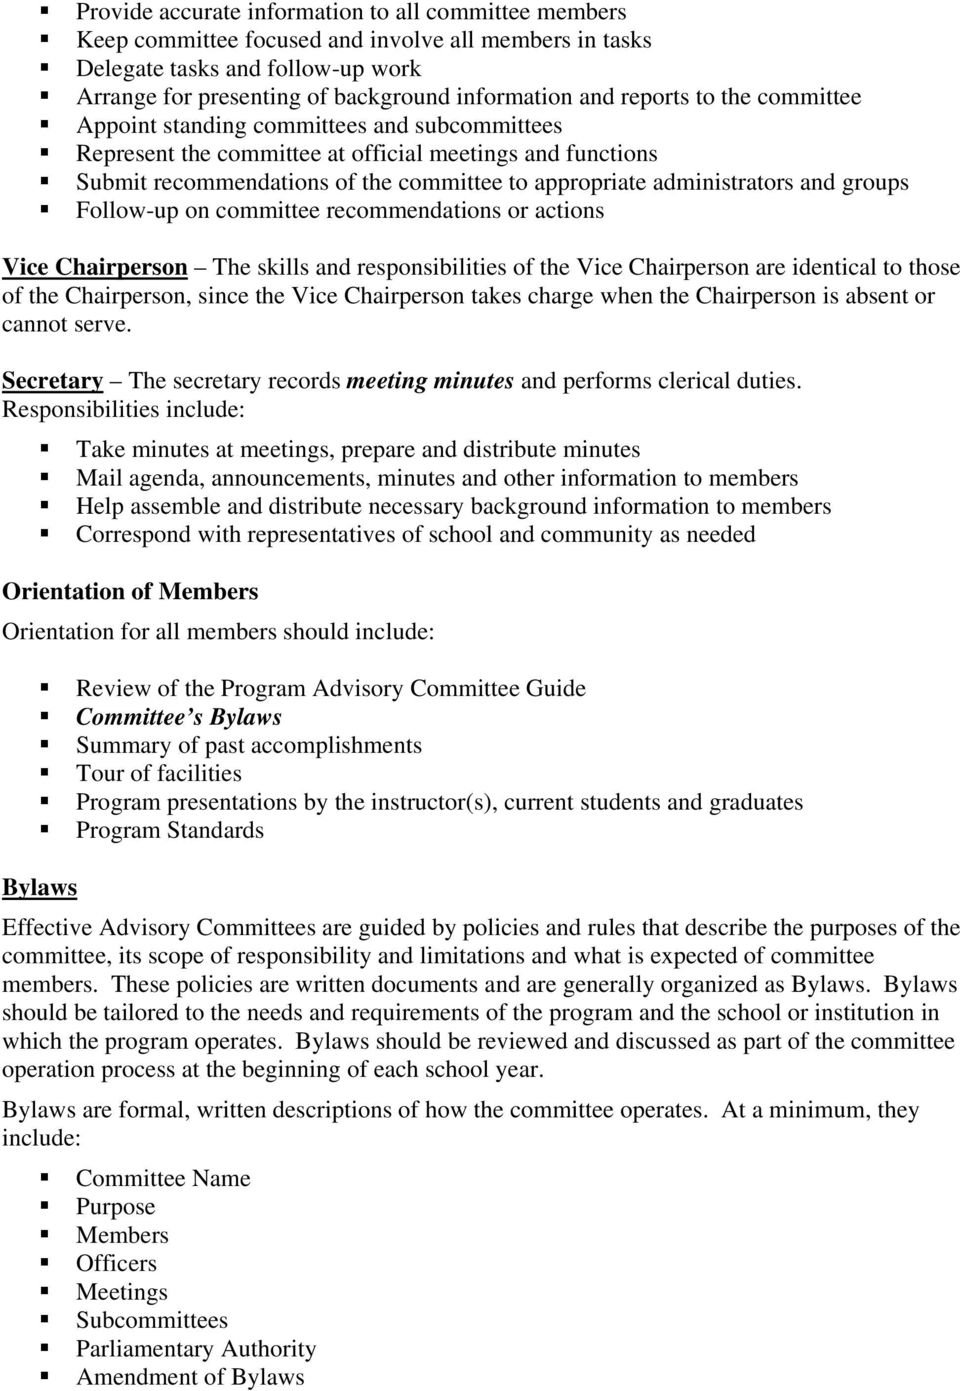 and groups Follow-up on committee recommendations or actions Vice Chairperson The skills and responsibilities of the Vice Chairperson are identical to those of the Chairperson, since the Vice